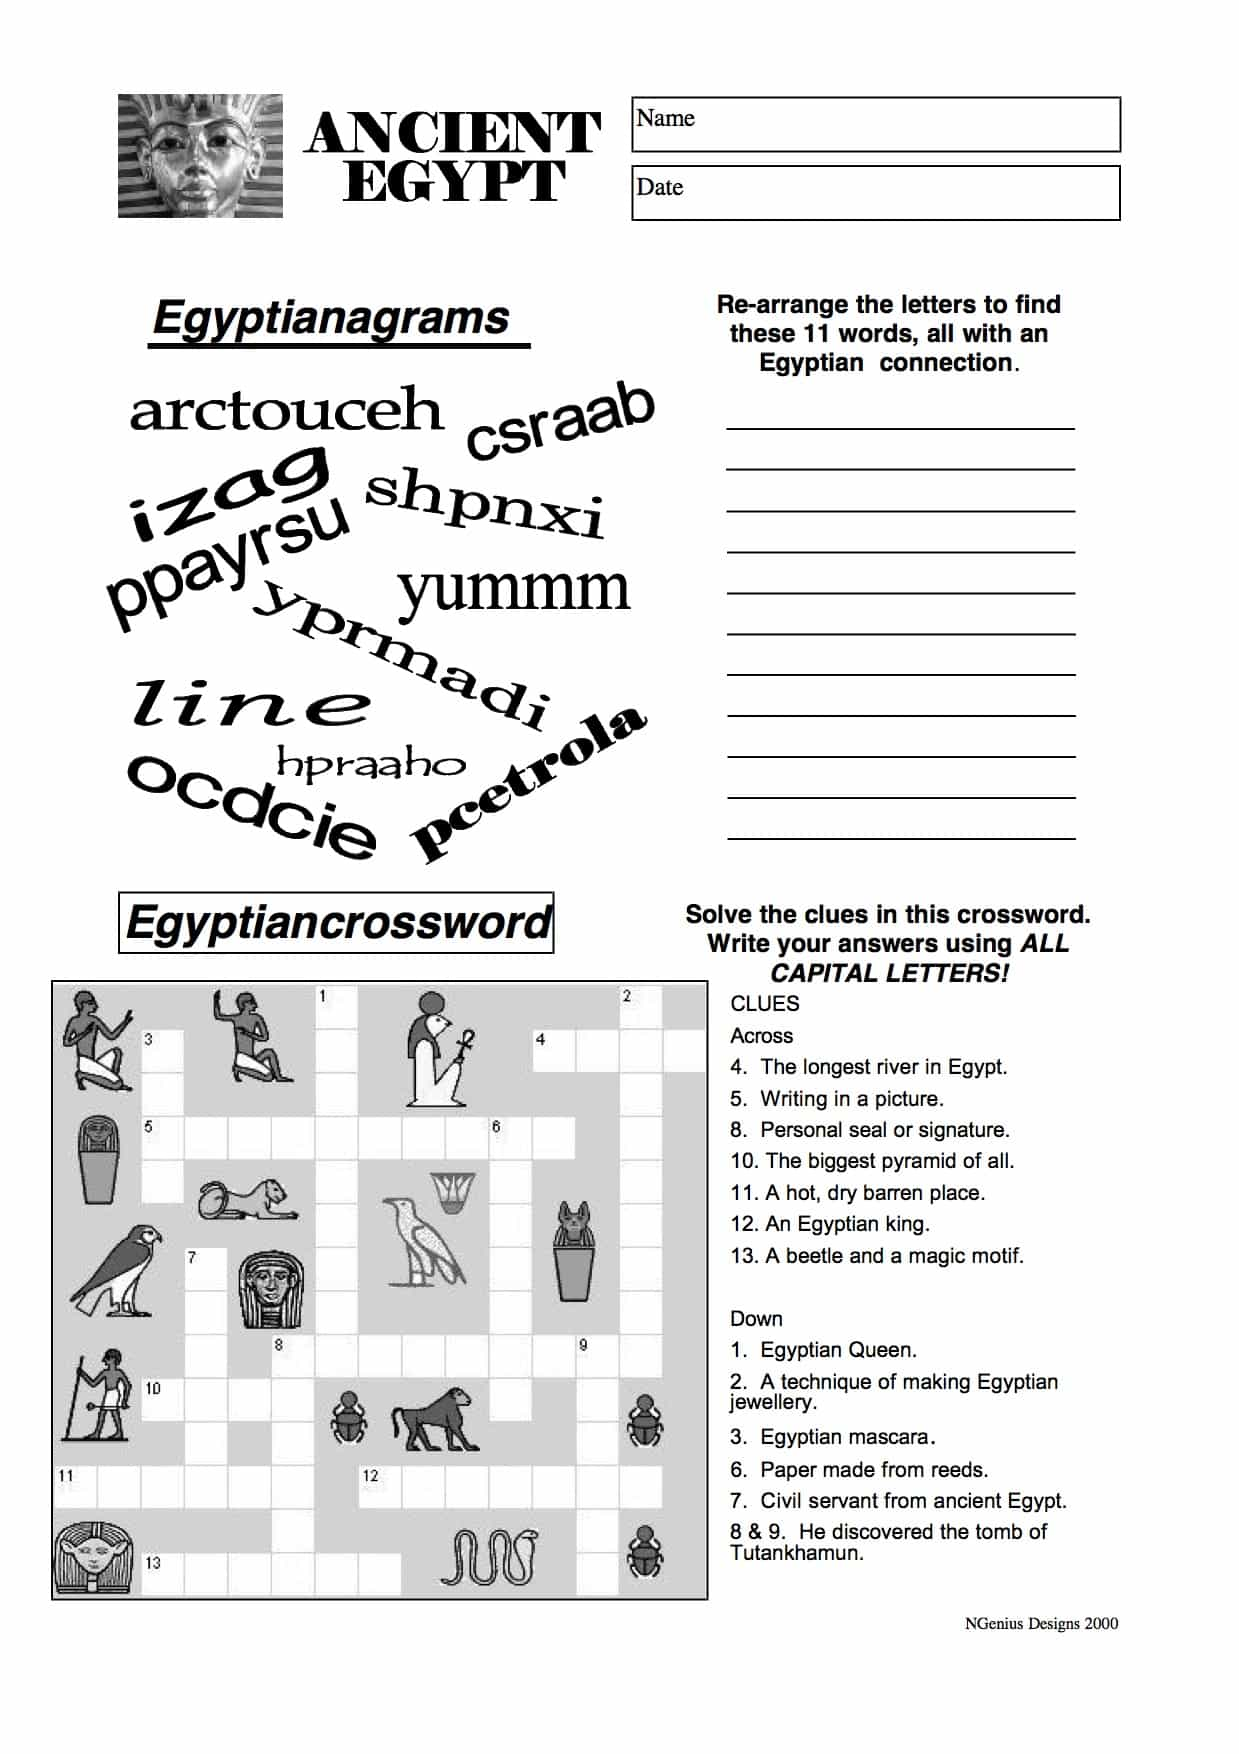 Ancient Egypt Anagram and Crossword - Free PDF Download